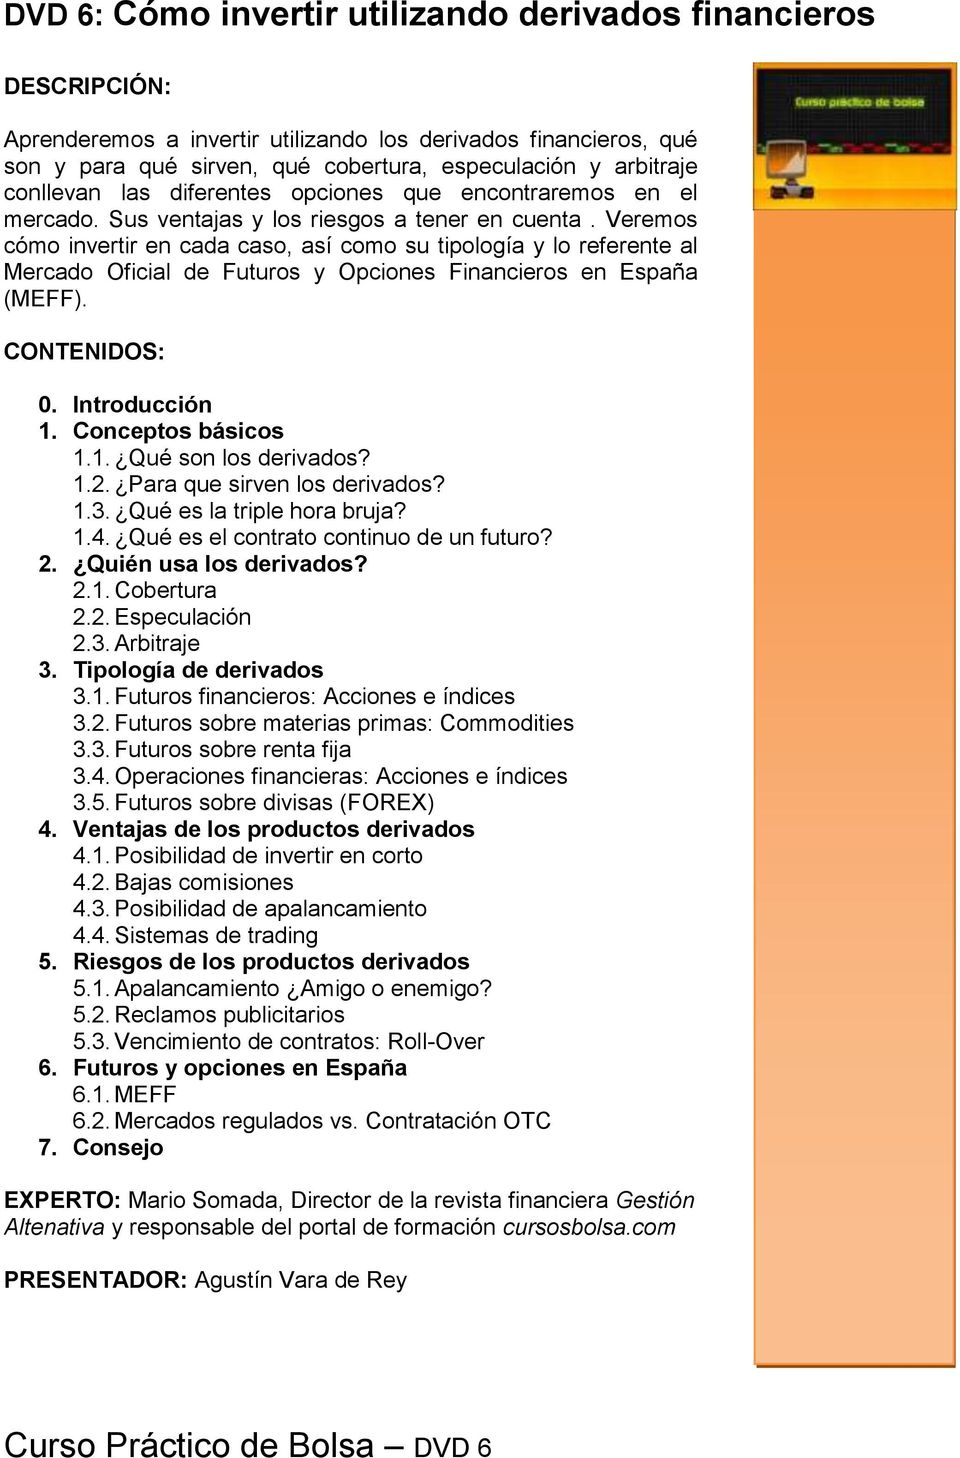 Gestion monetaria forex pdf